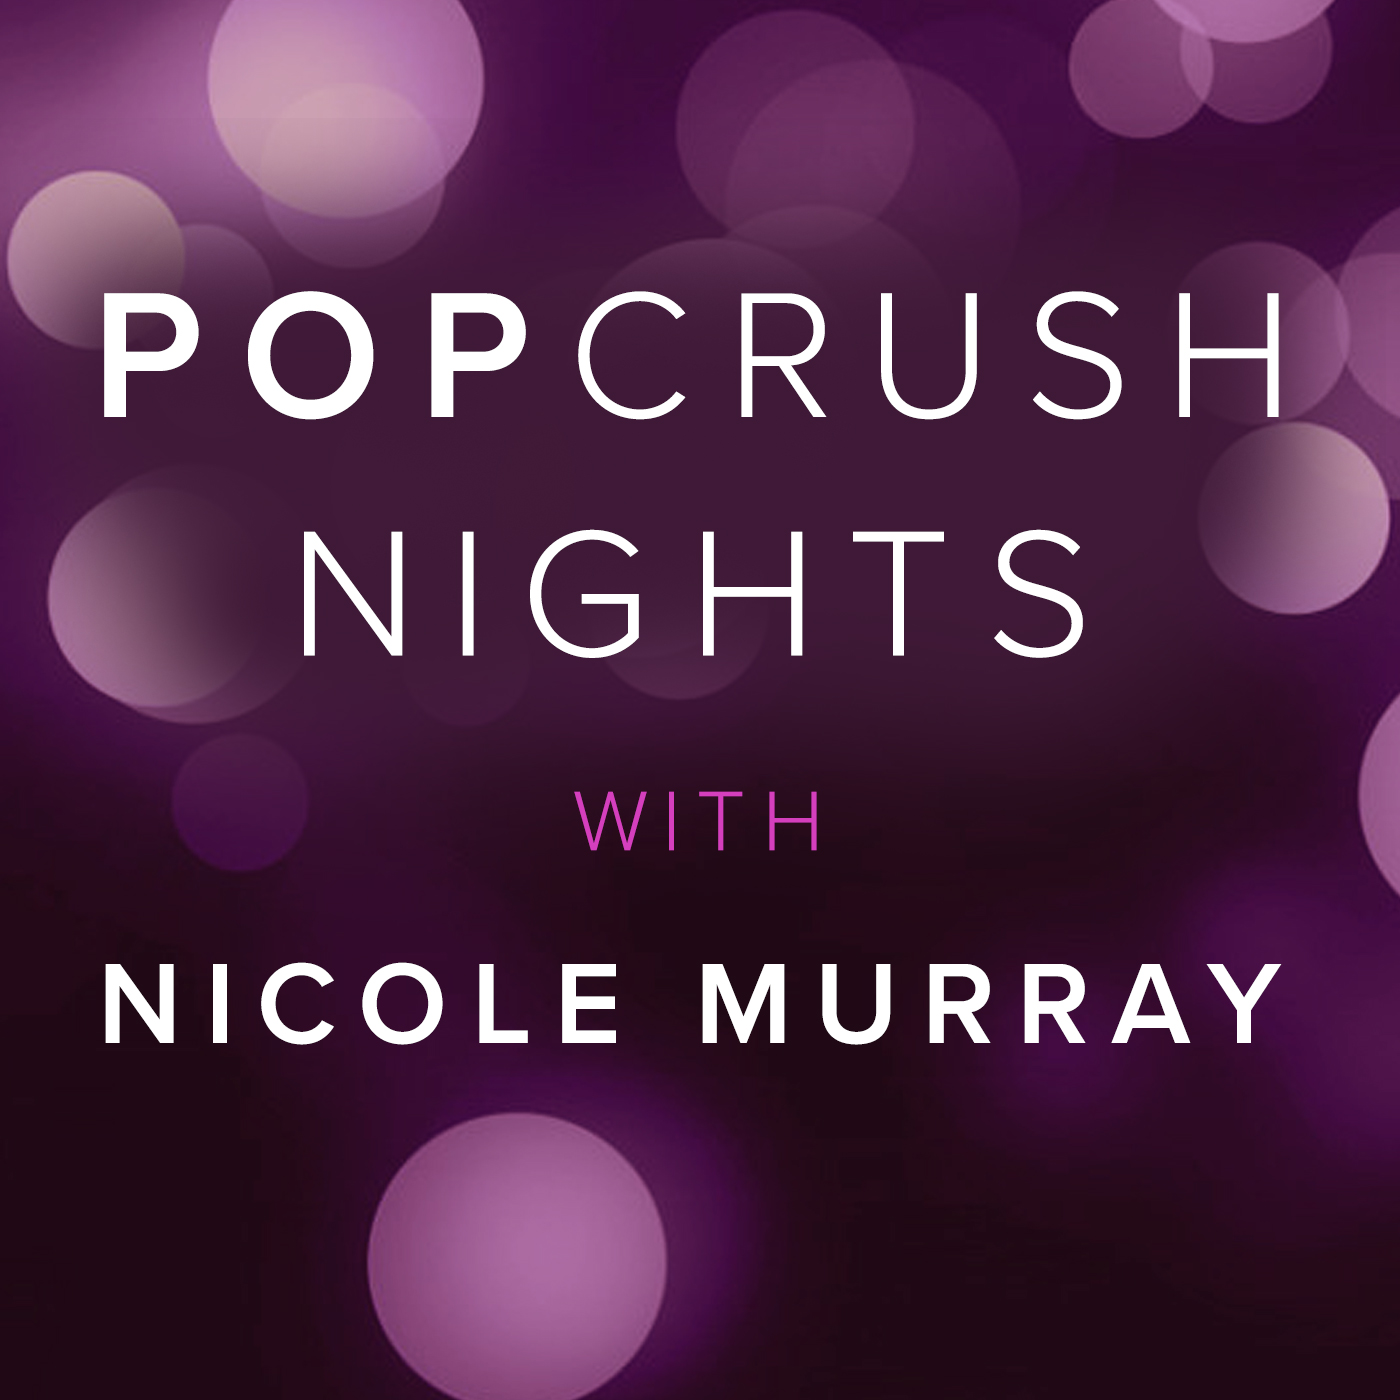 PopCrush Nights with Nicole Murray